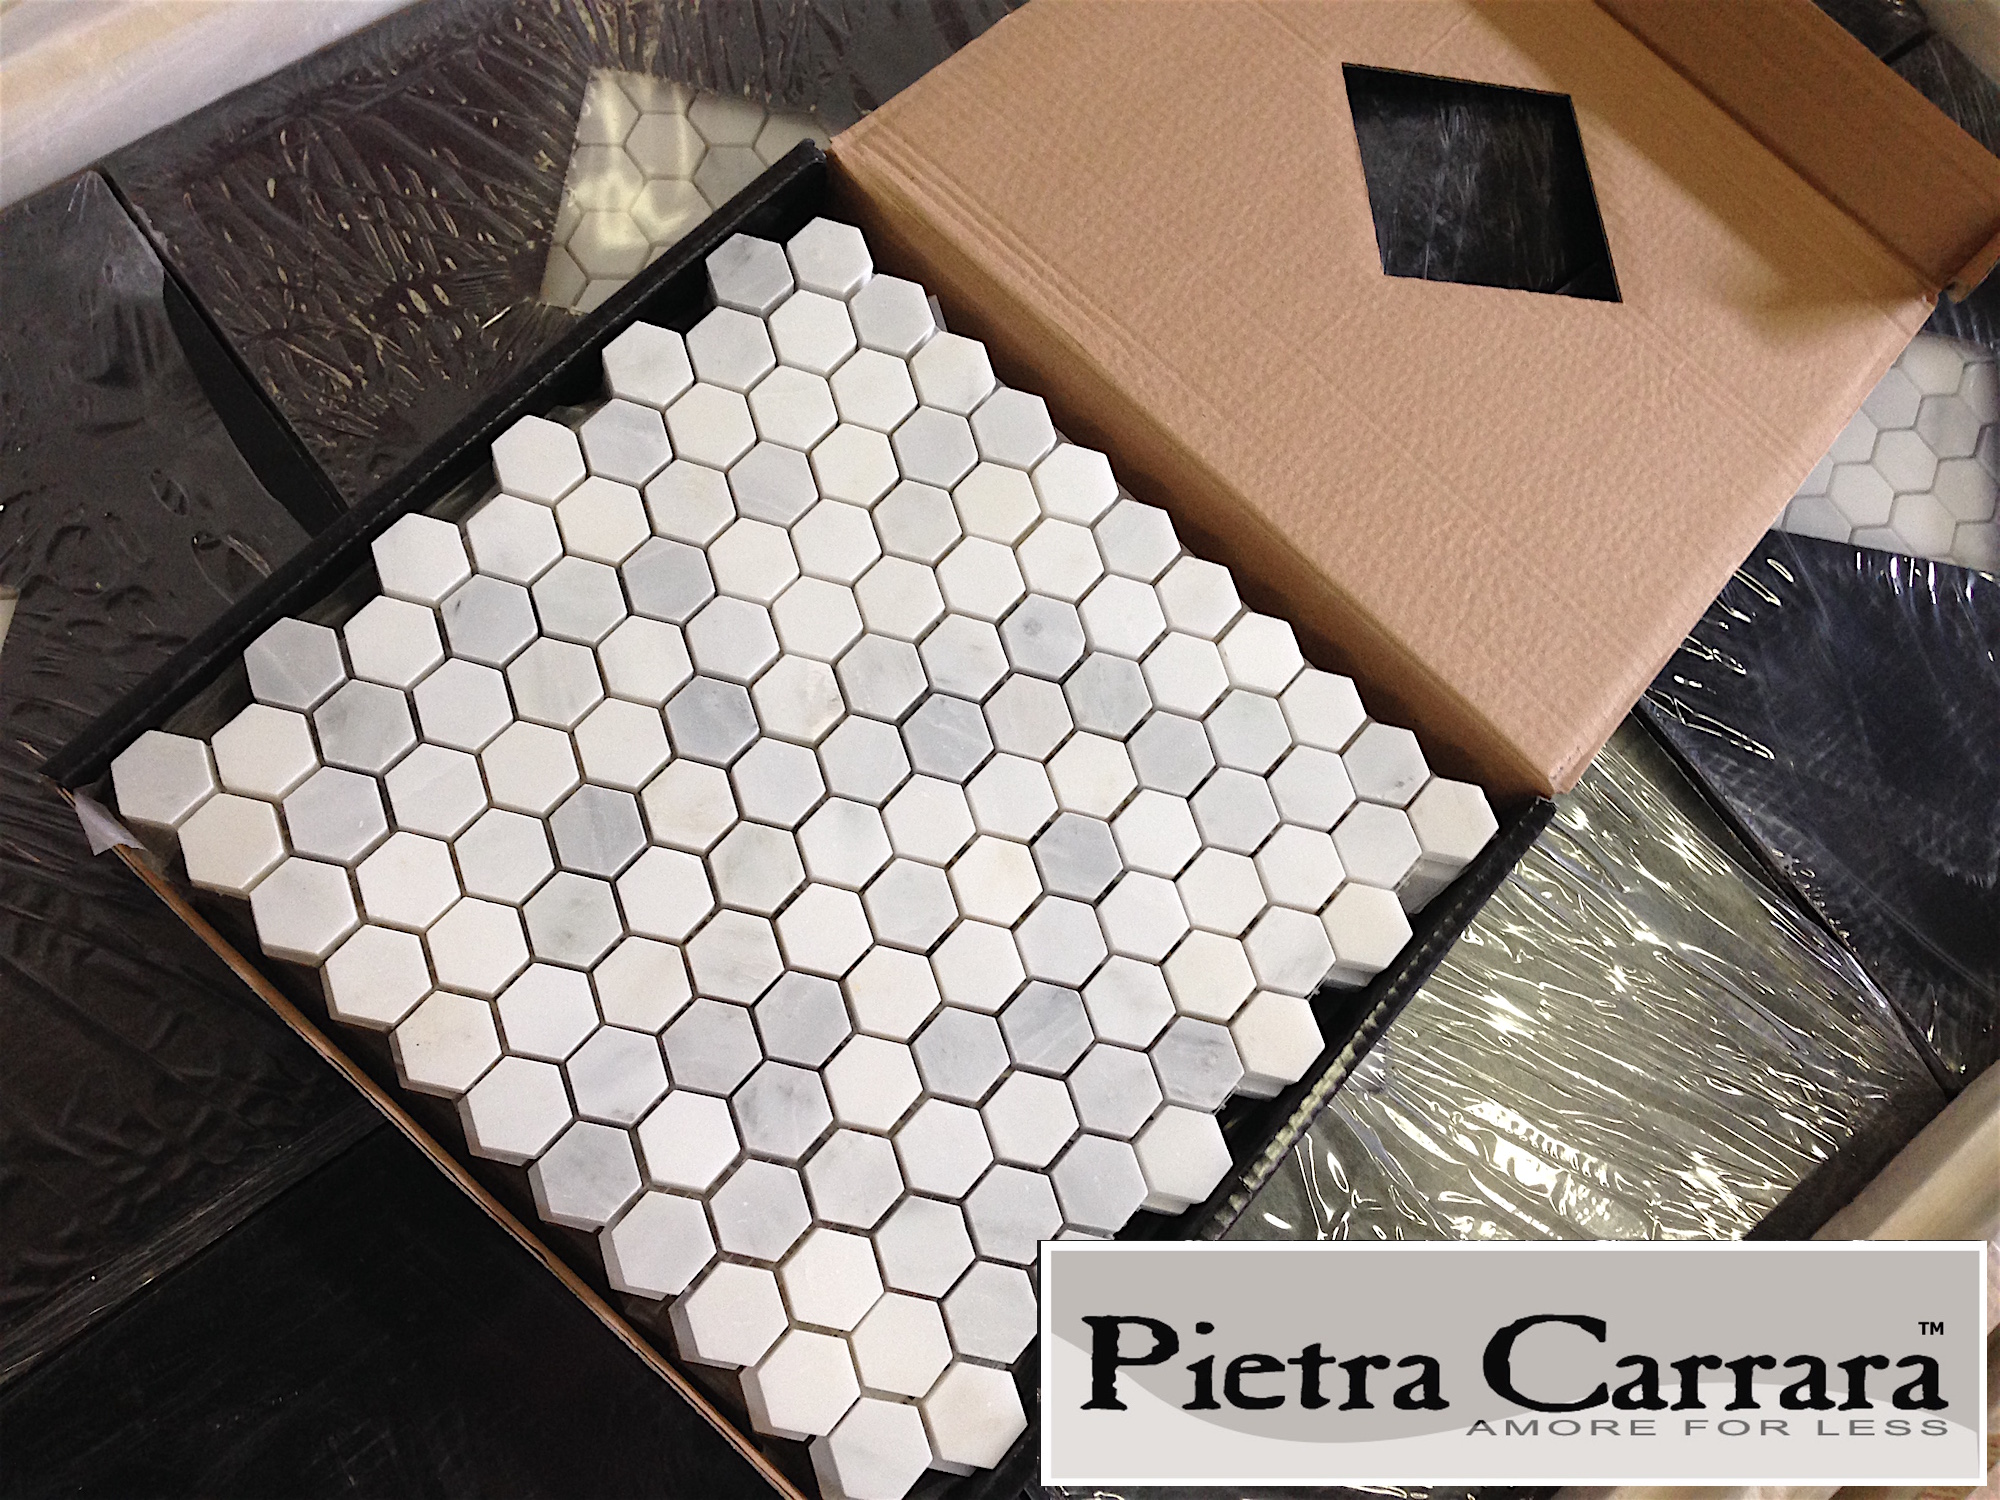 Pietra Carrara 1x1%22 Hexagon